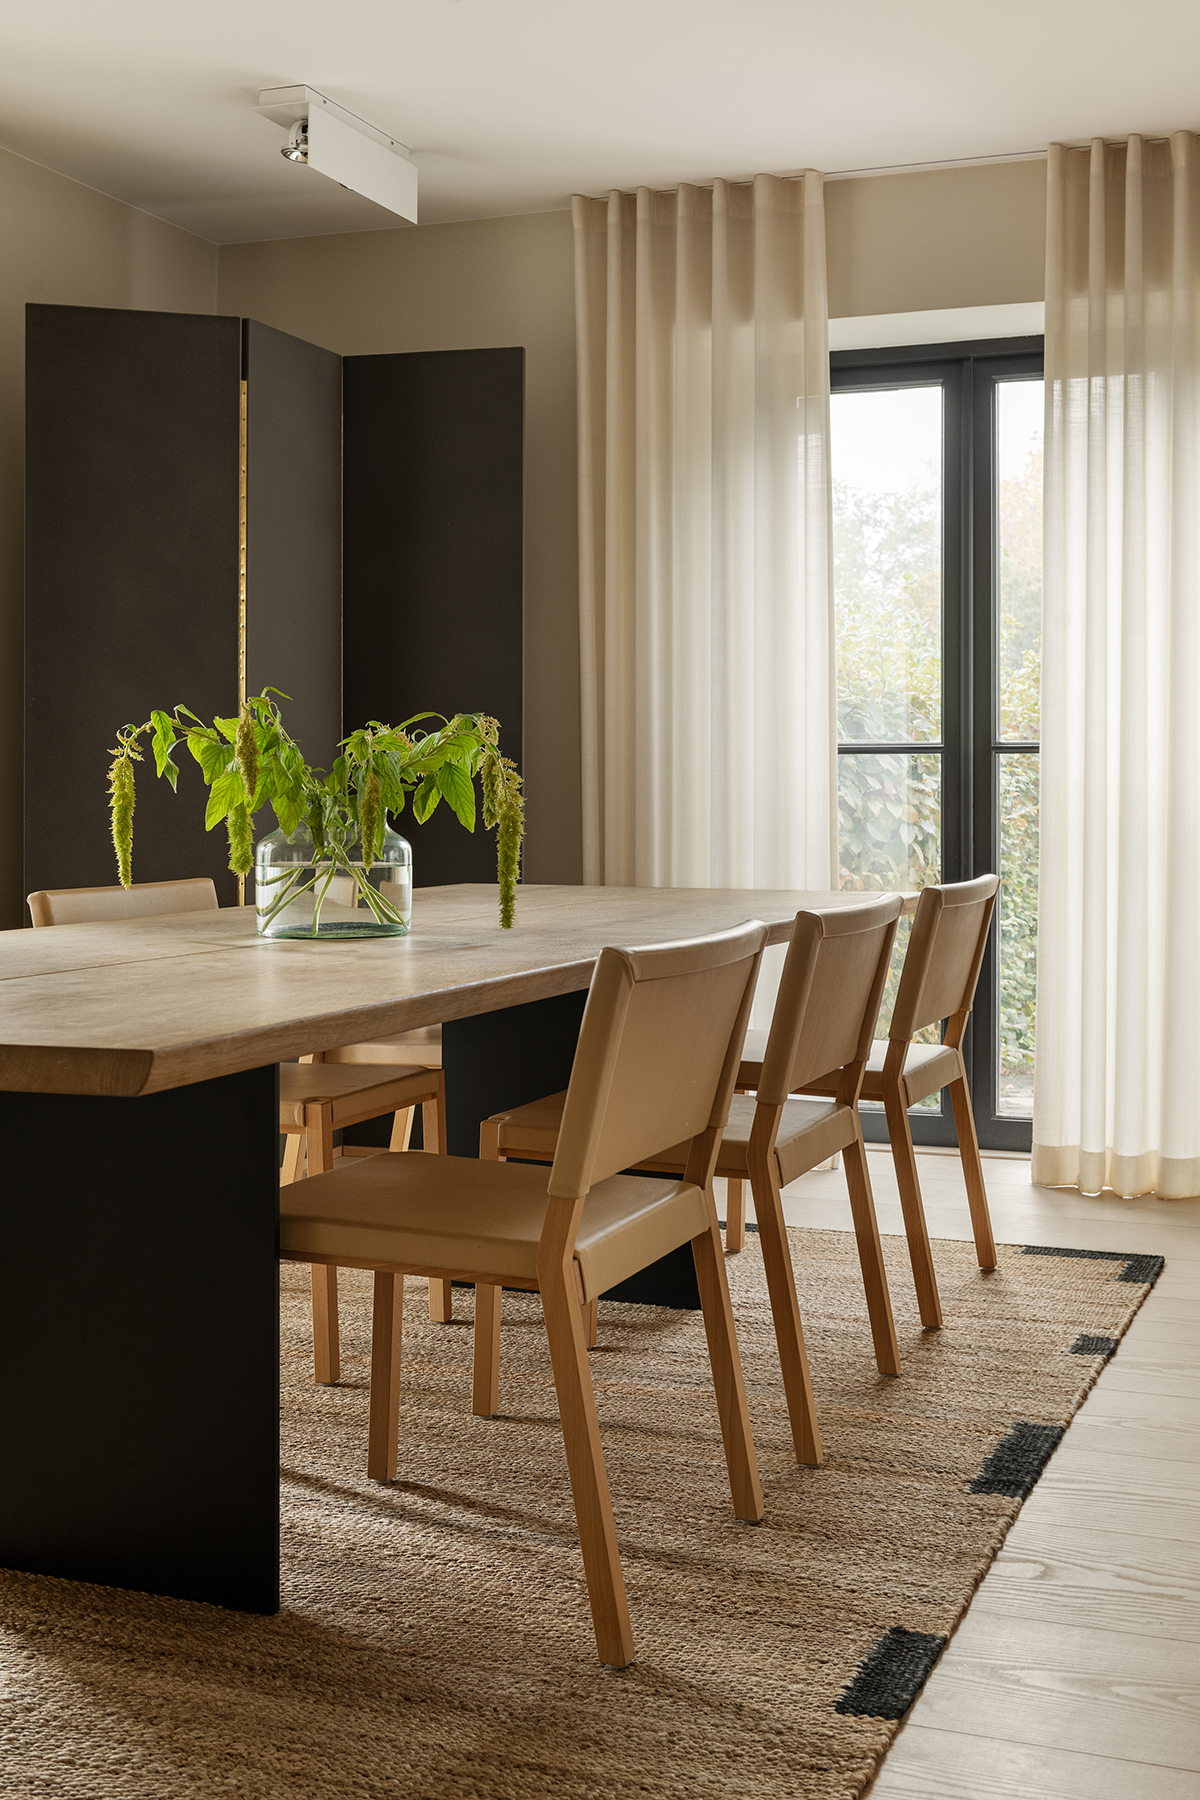 The Jute Edge rug in Black in a sunny dining room with a large dinner table as well as chair in wood on top of it.